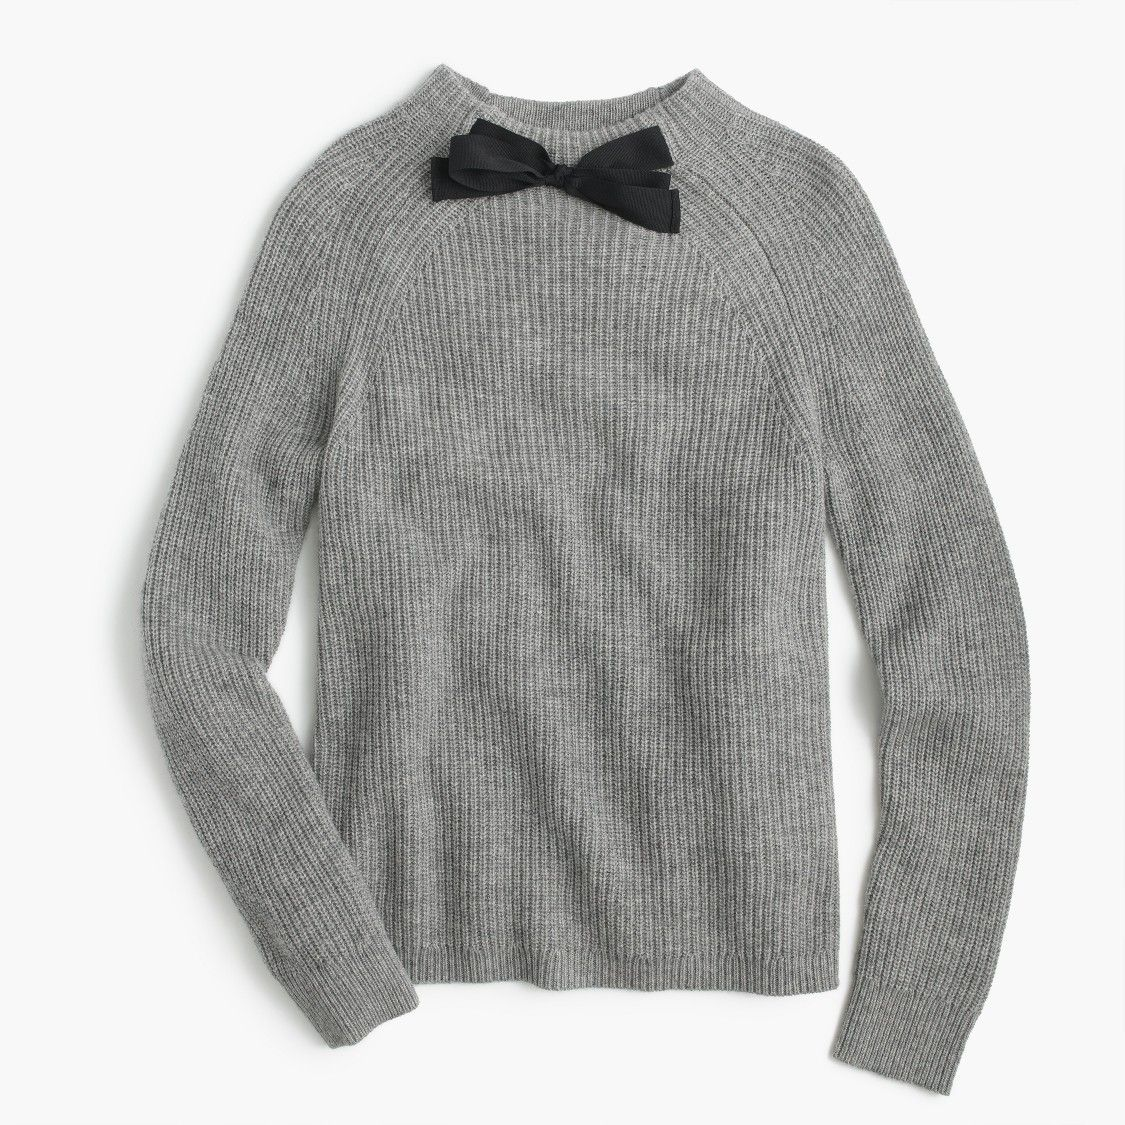 Shop the Gayle Tie-Neck Sweater at JCrew.com and see our entire ...